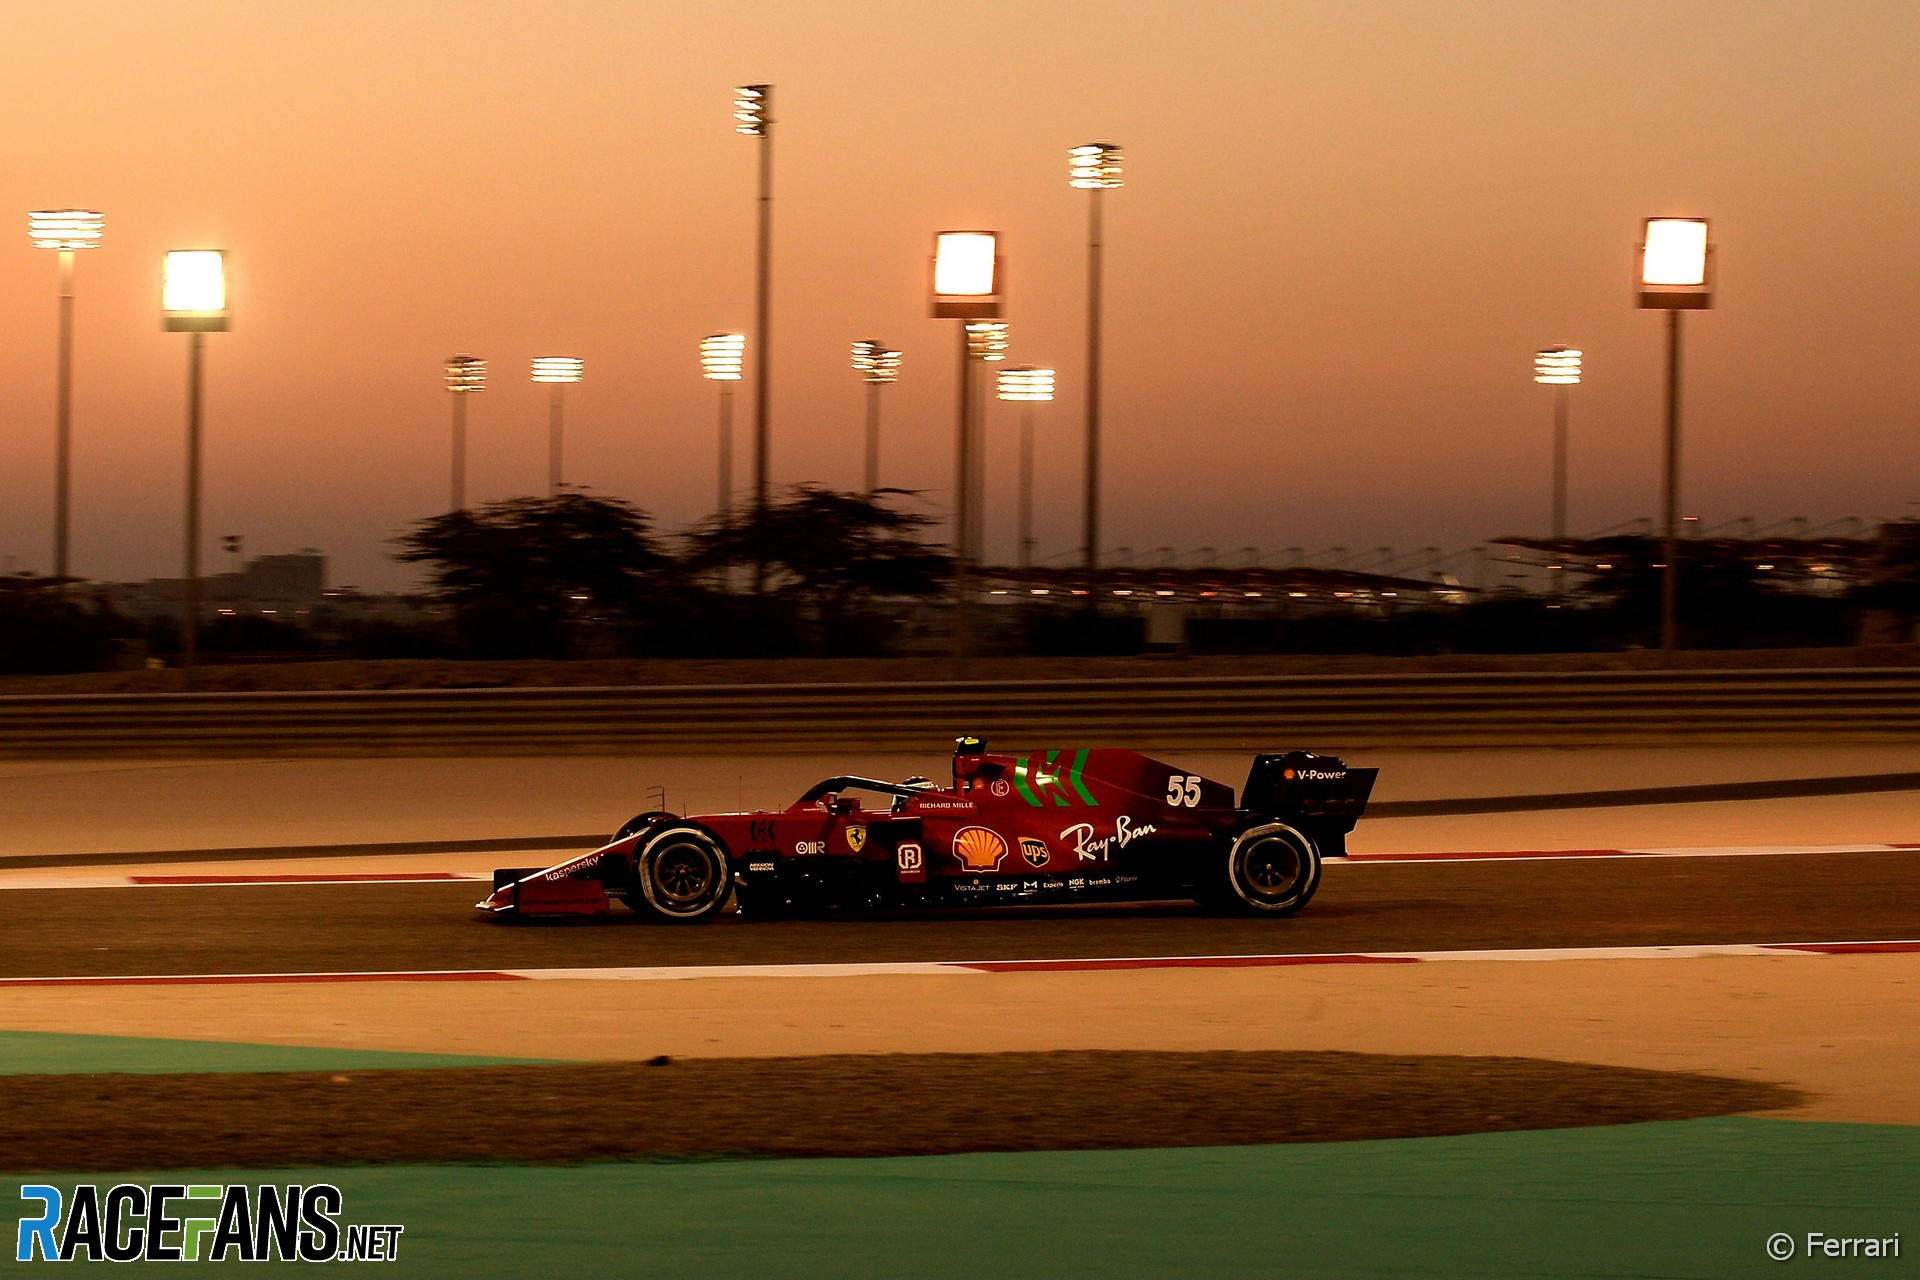 Carlos Sainz Jnr, Ferrari, Bahrain International Circuit, 2021